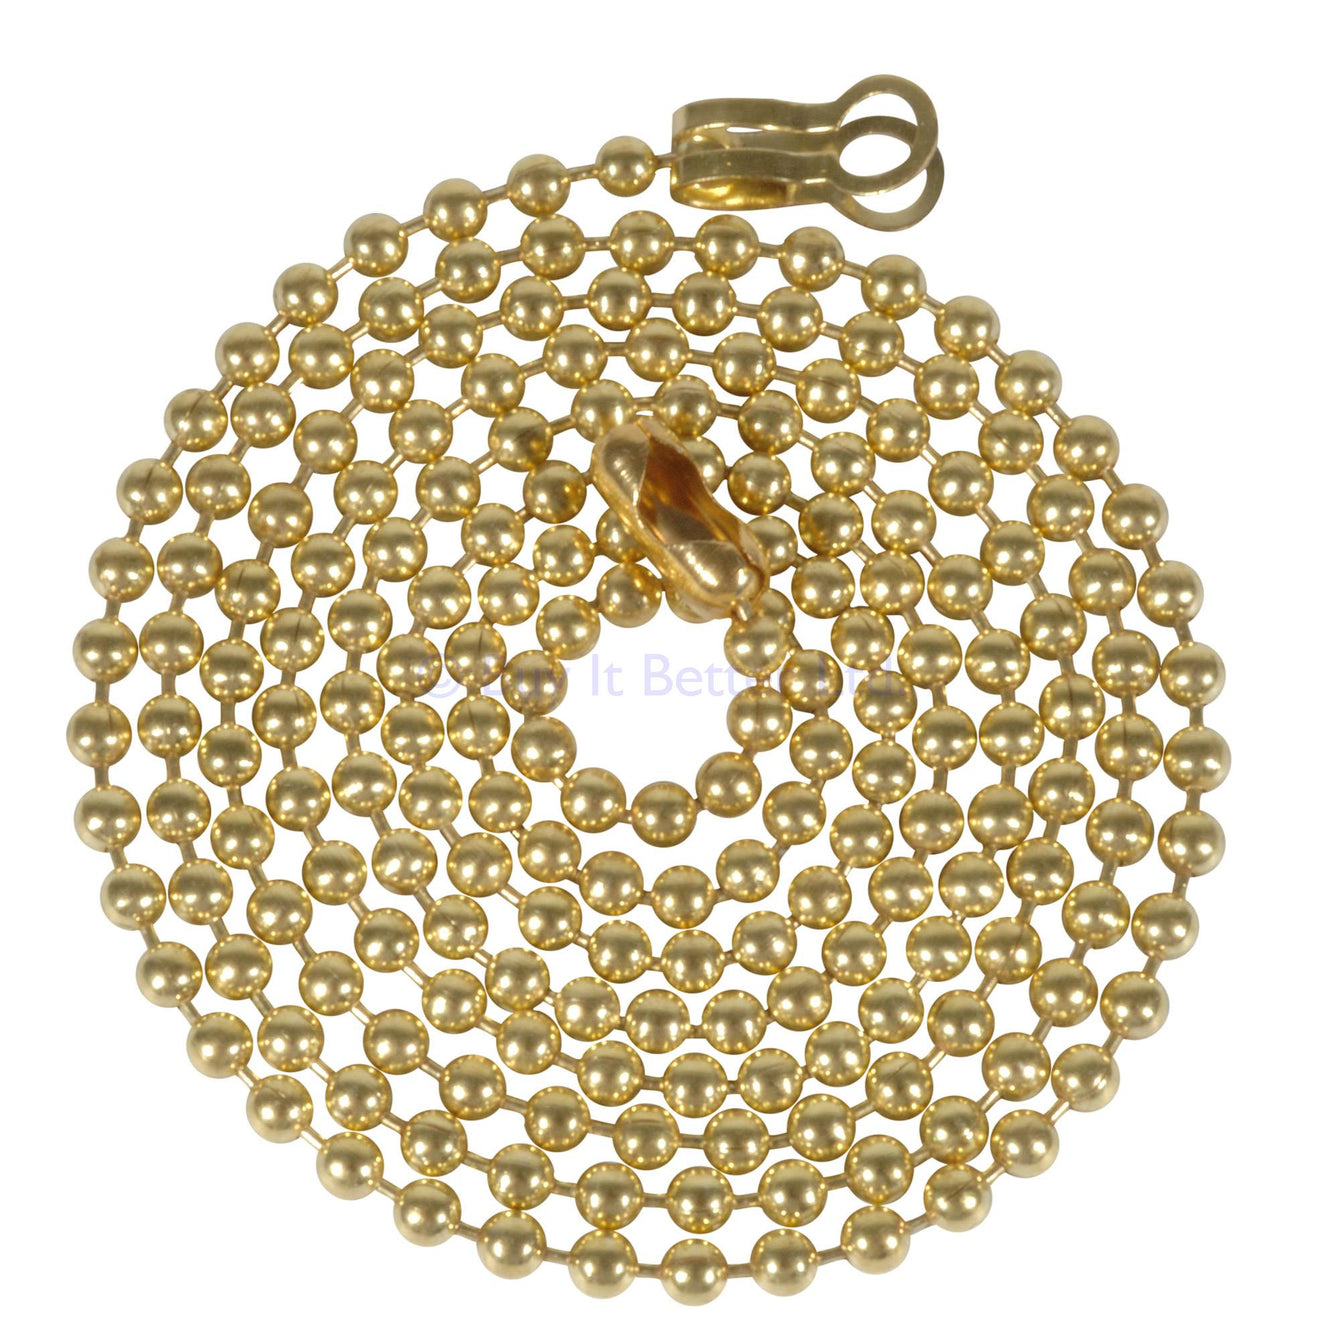 ElekTek Light Pull Chain Extension With Ball Chain Connector 800mm Long Brass - Buy It Better Antique Brass